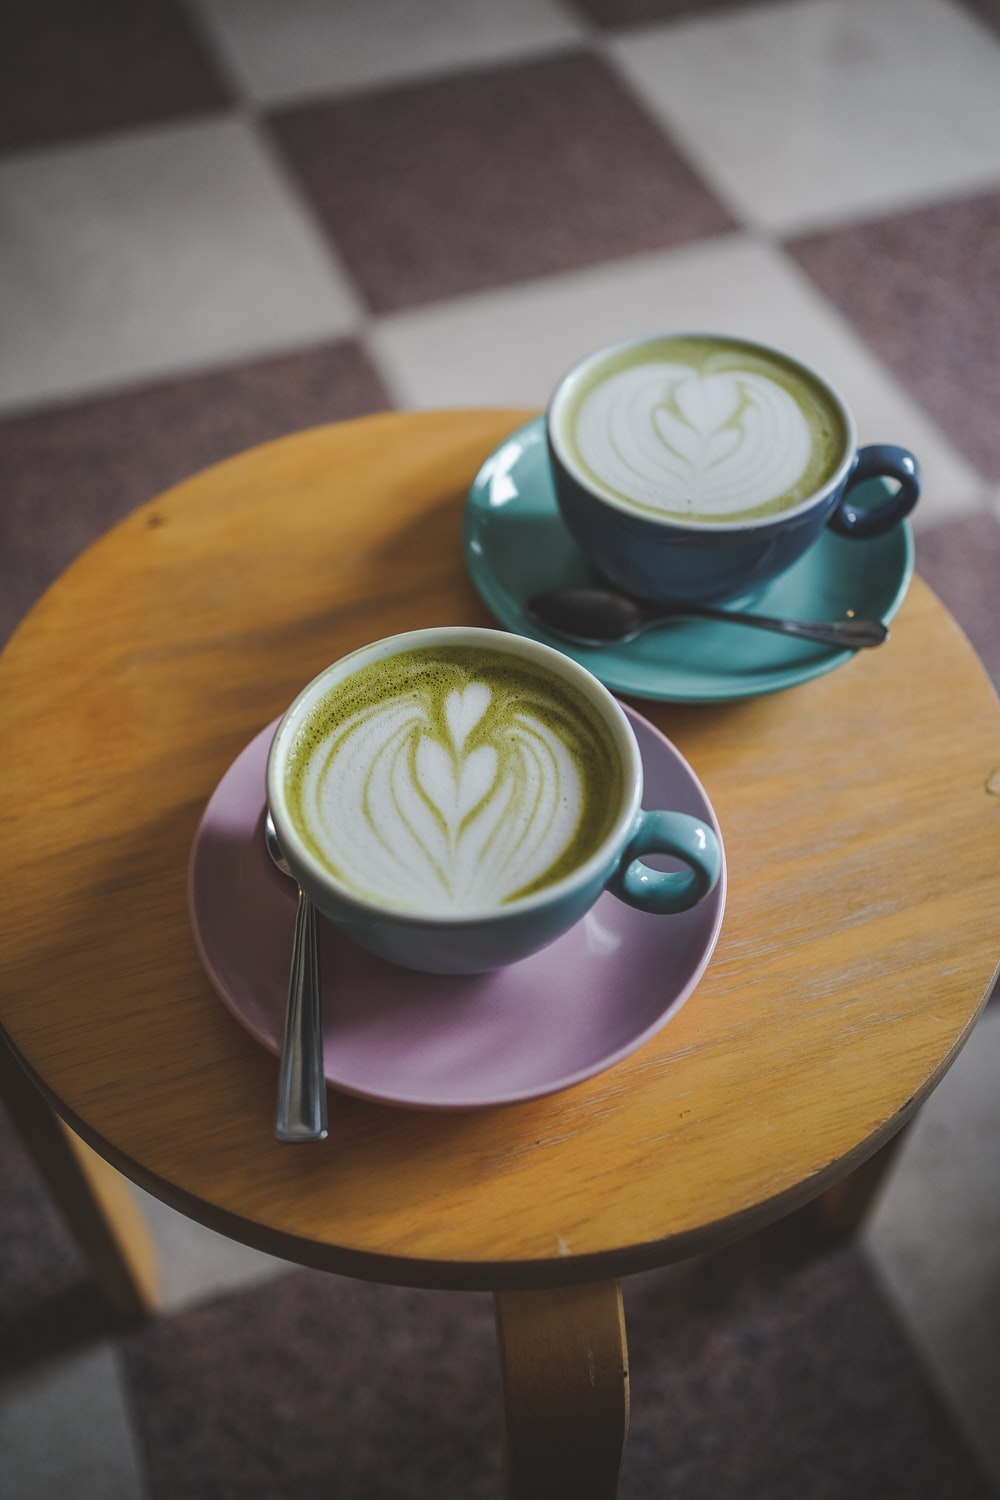 green and white ceramic cup with saucer on brown wooden table